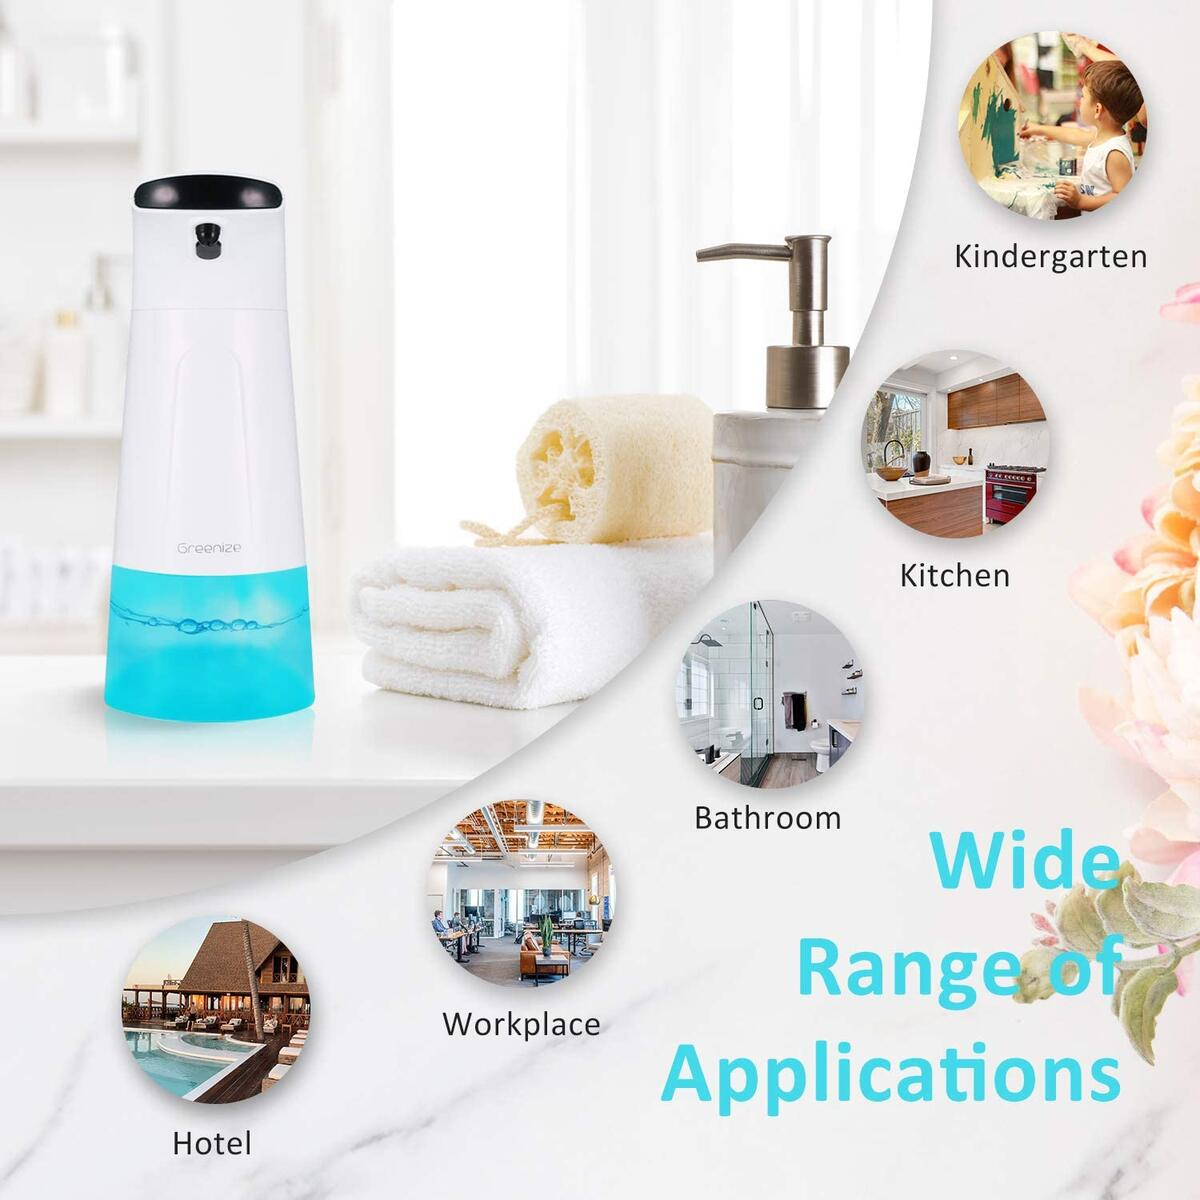 Greenize Automatic Foaming Soap Dispenser, 280ml Touchless Hands Free Soap Dispenser with Adjustable Modes, Battery Operated Foam Hand Soap Pump Dispenser for Multi-Purpose Bathroom/Kitchen/Hotel